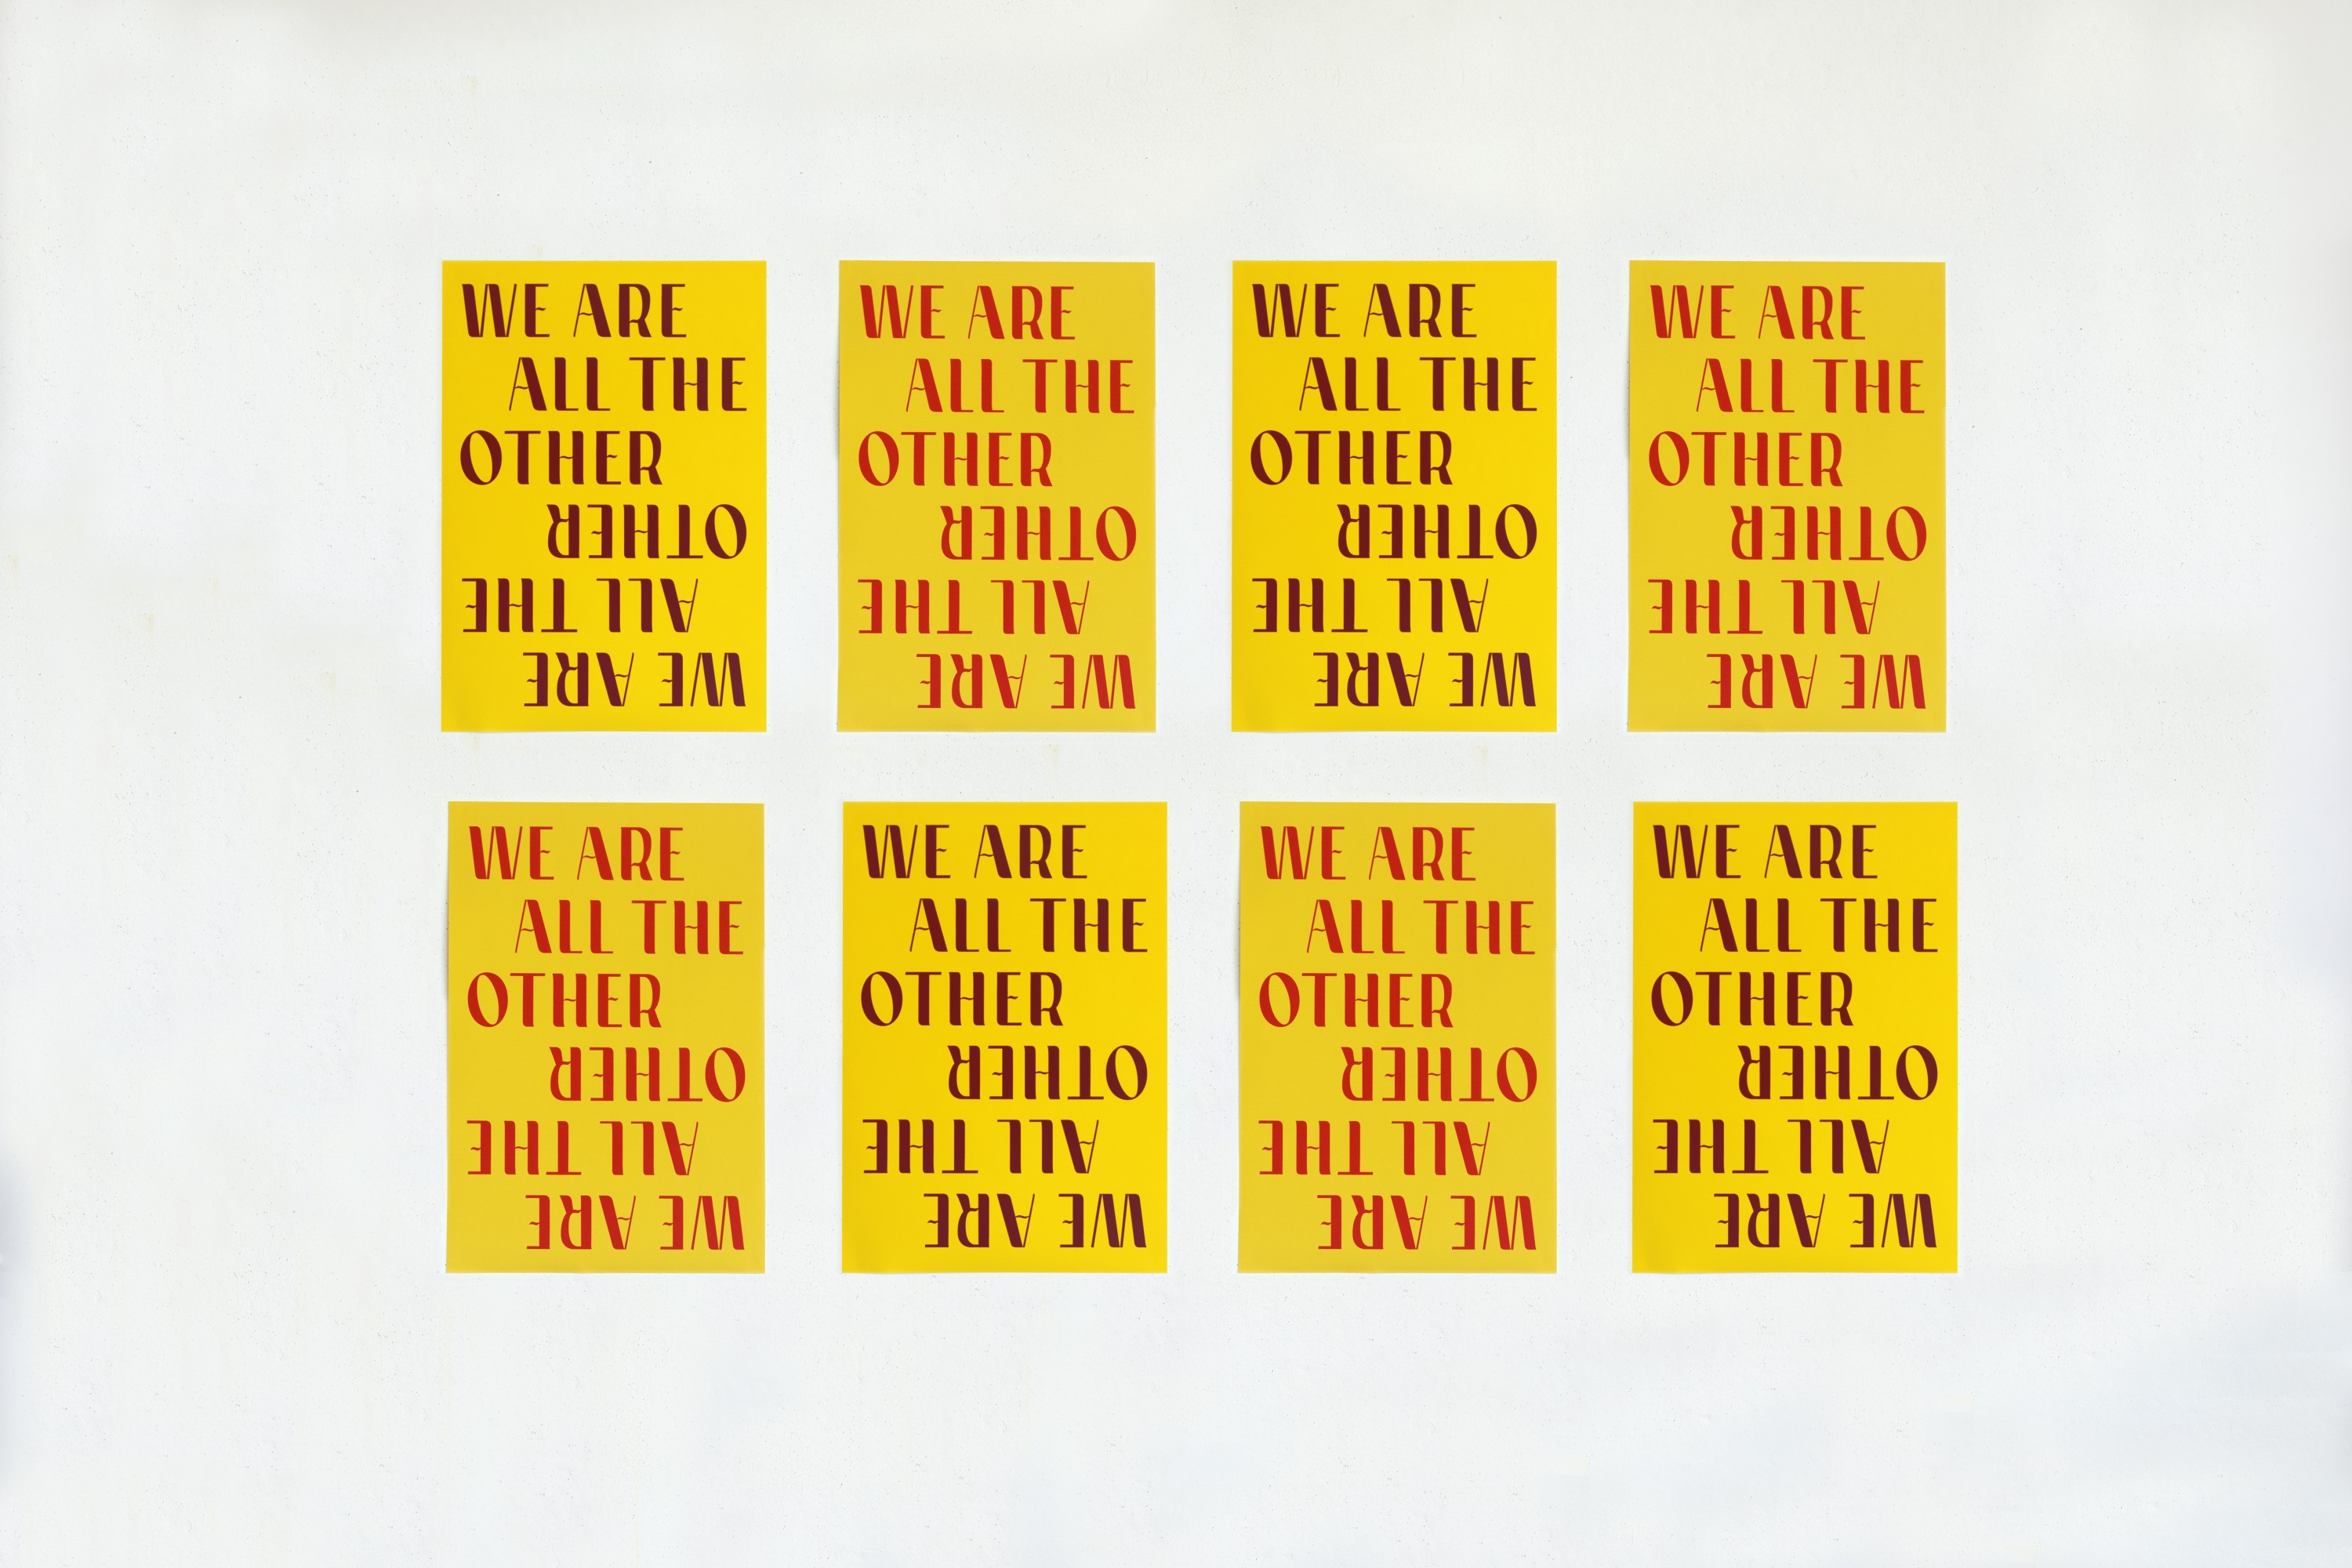 8 pieces of yellow paper, some with black text, some with red text